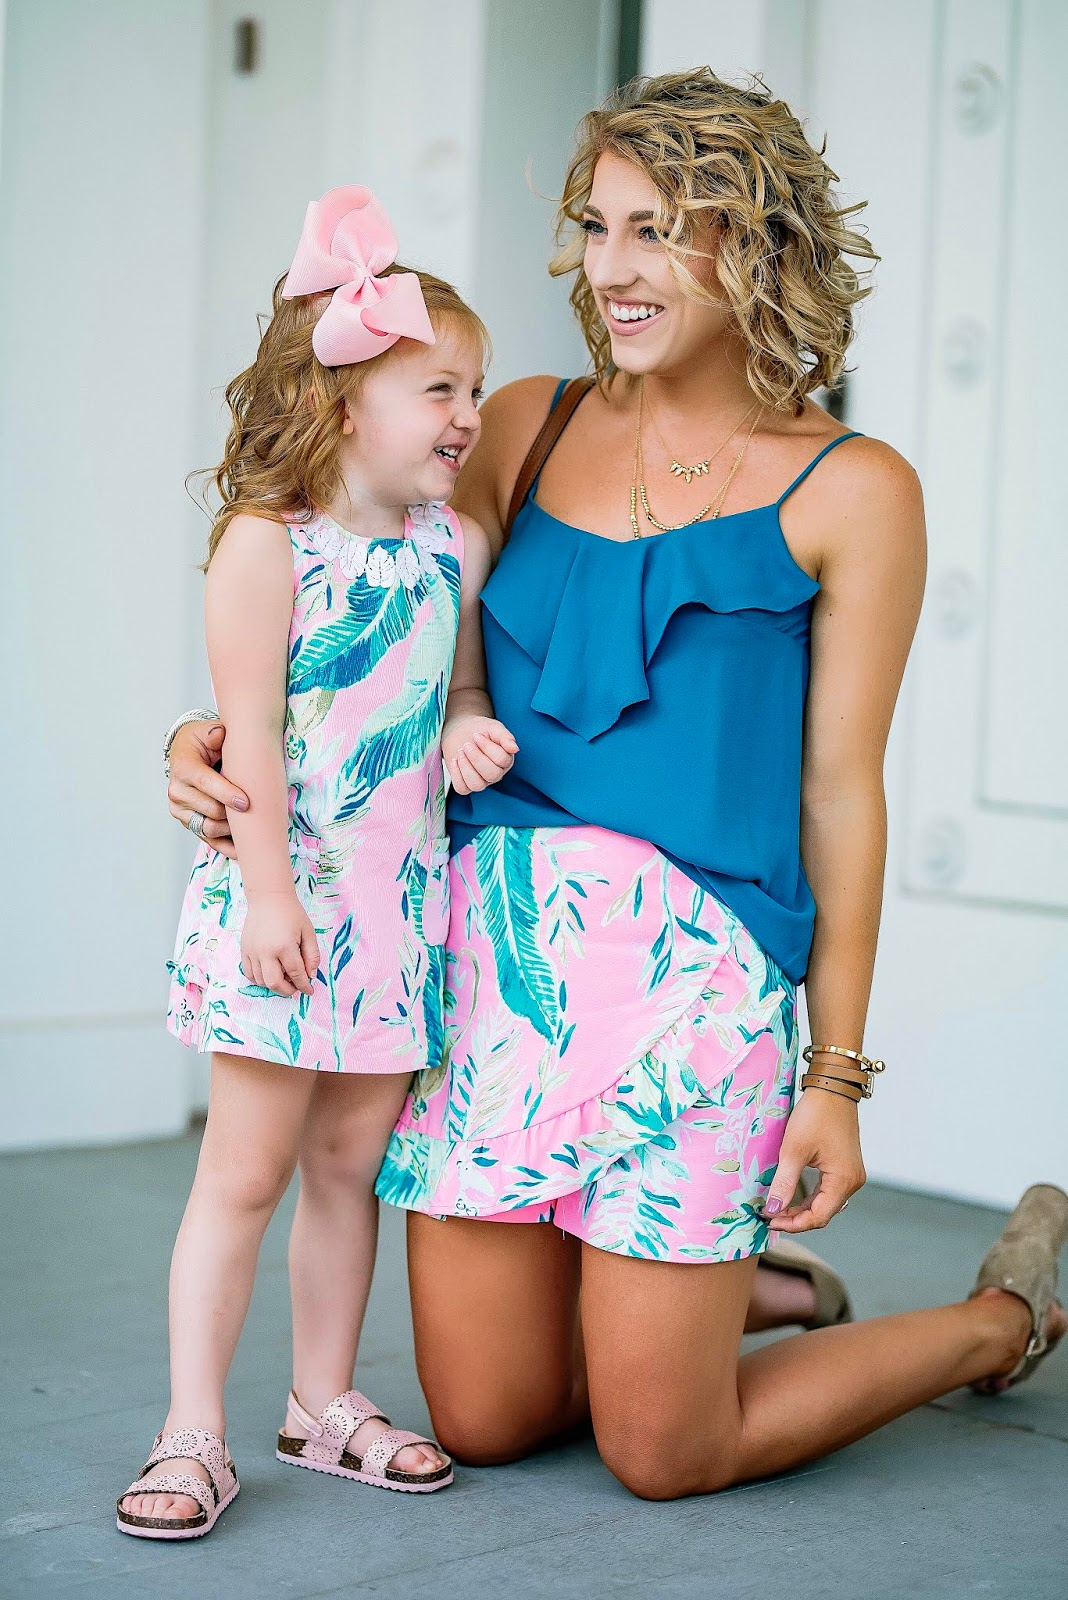 ac5023e71b8 Be sure to ahead and click through to lillypulitzer.com